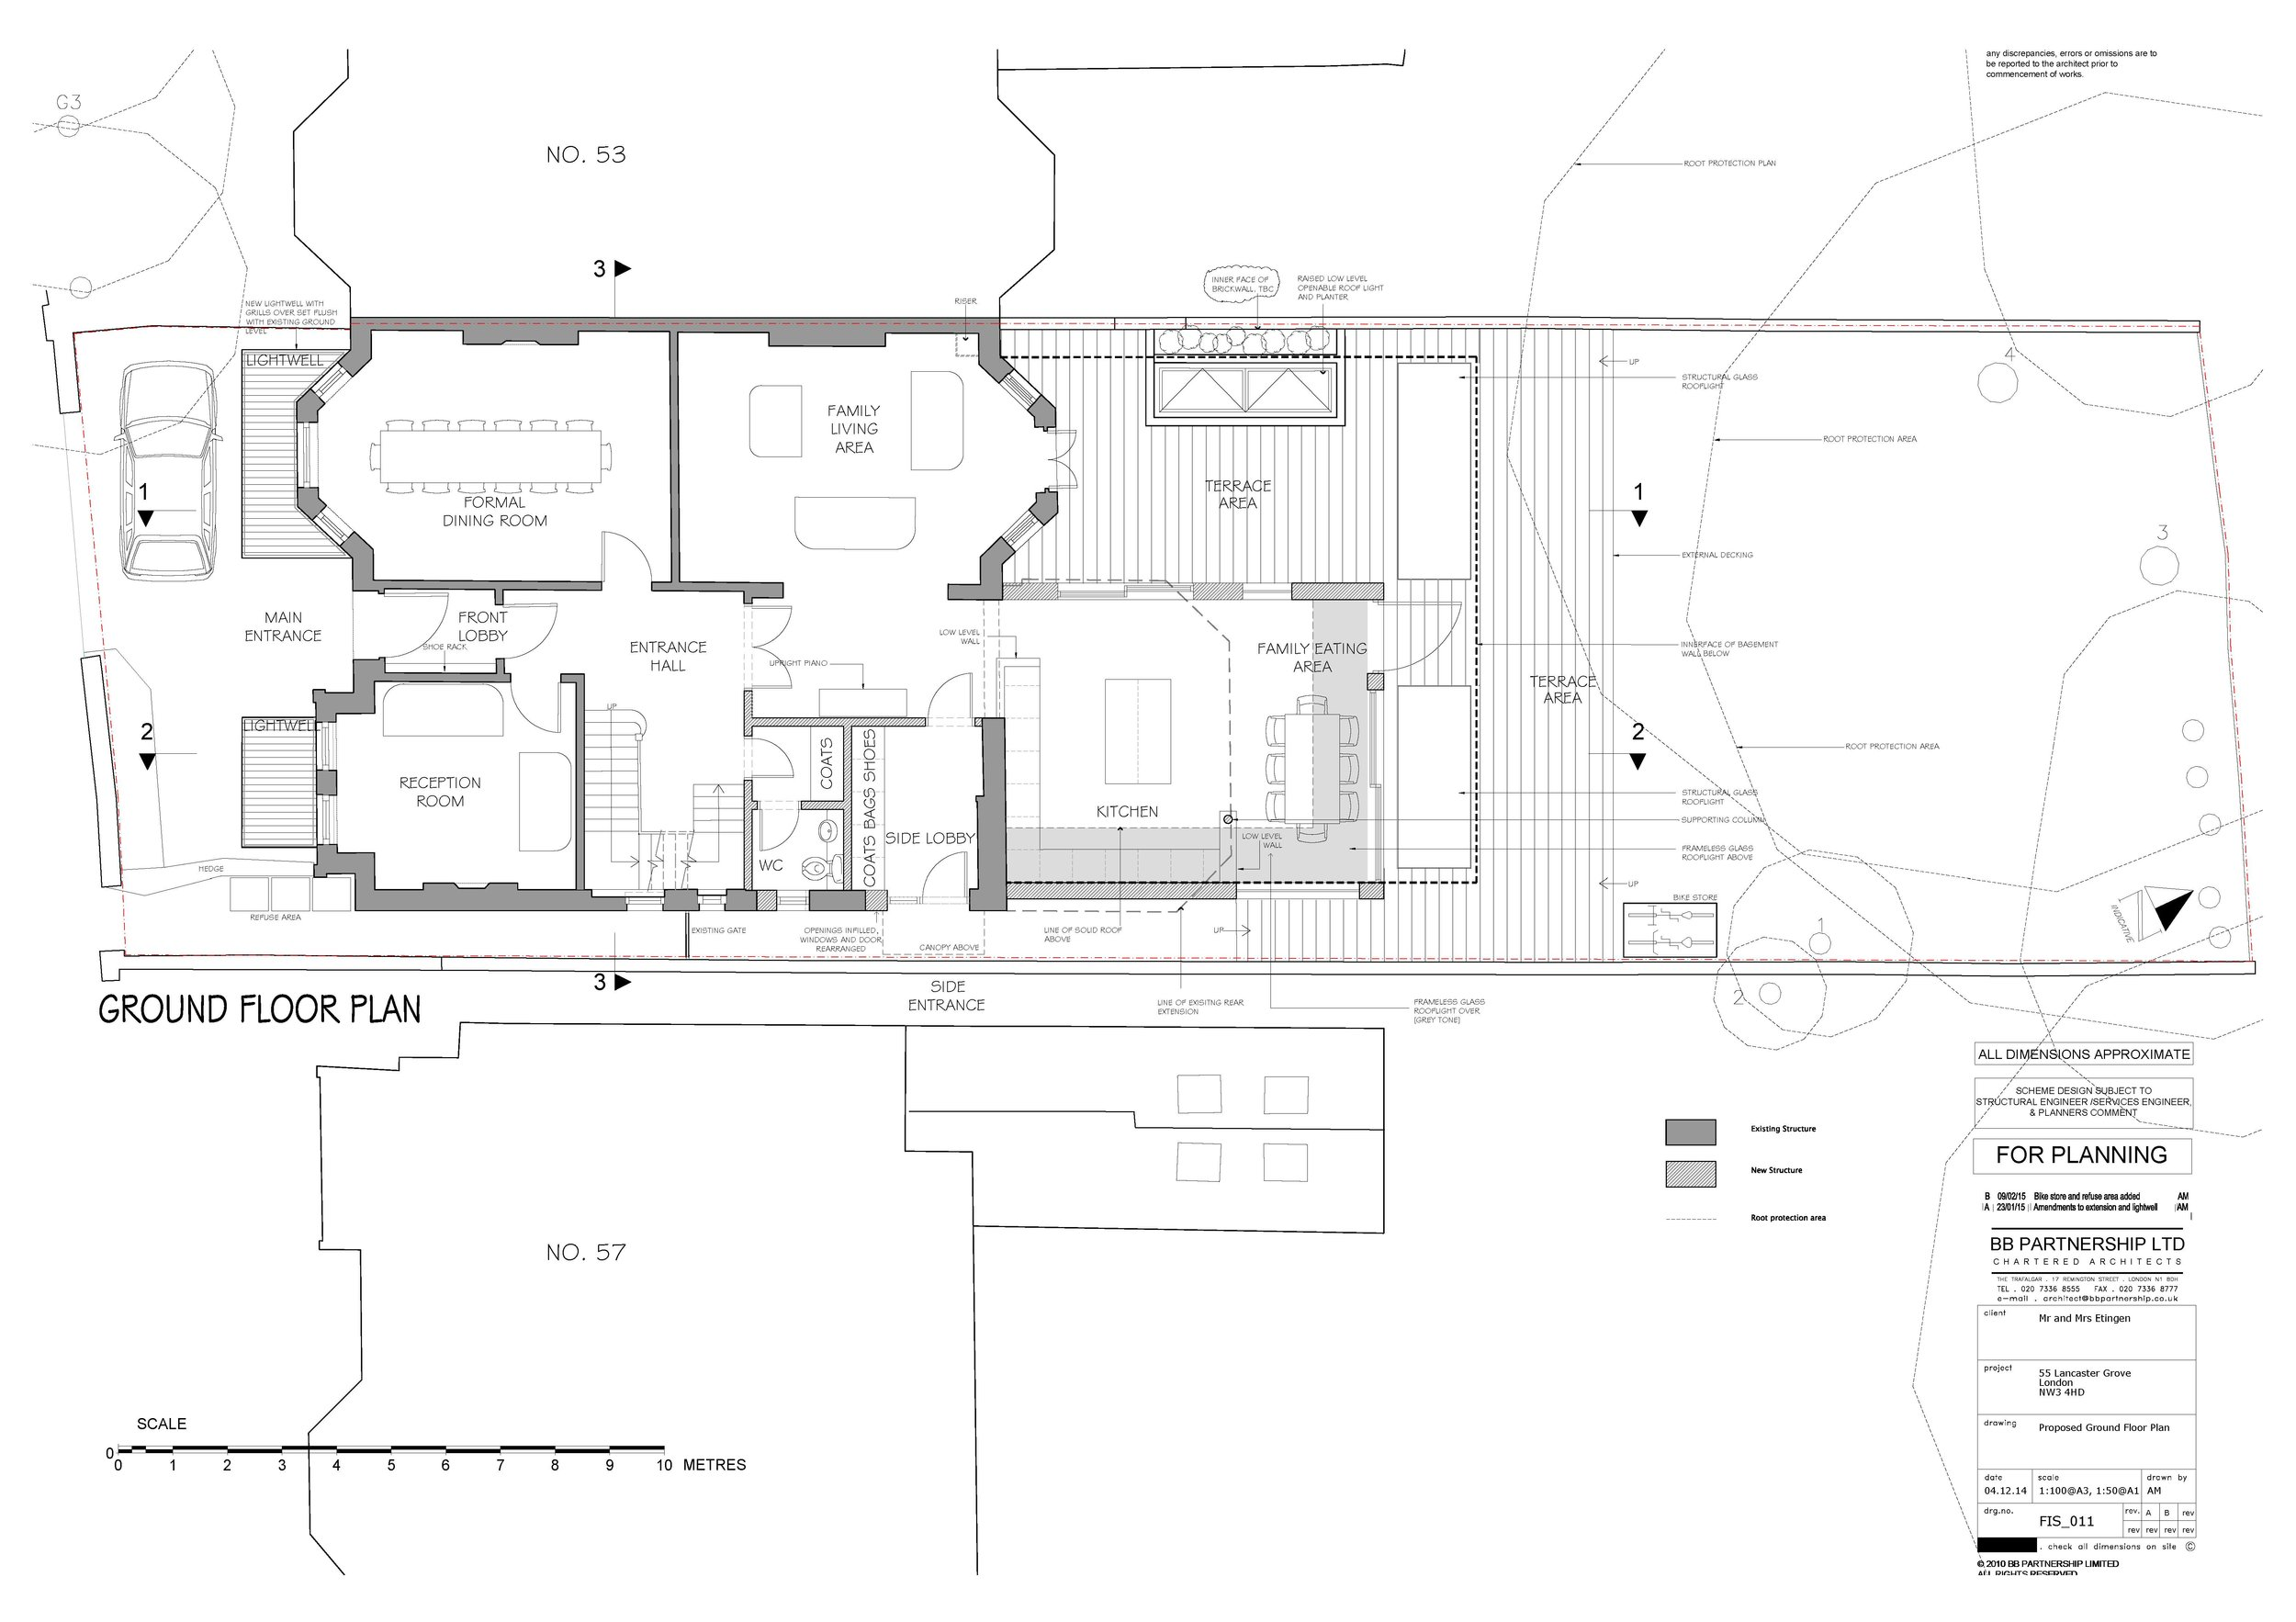 FIS_011 Rev B_GROUND FLOOR PLAN.jpg